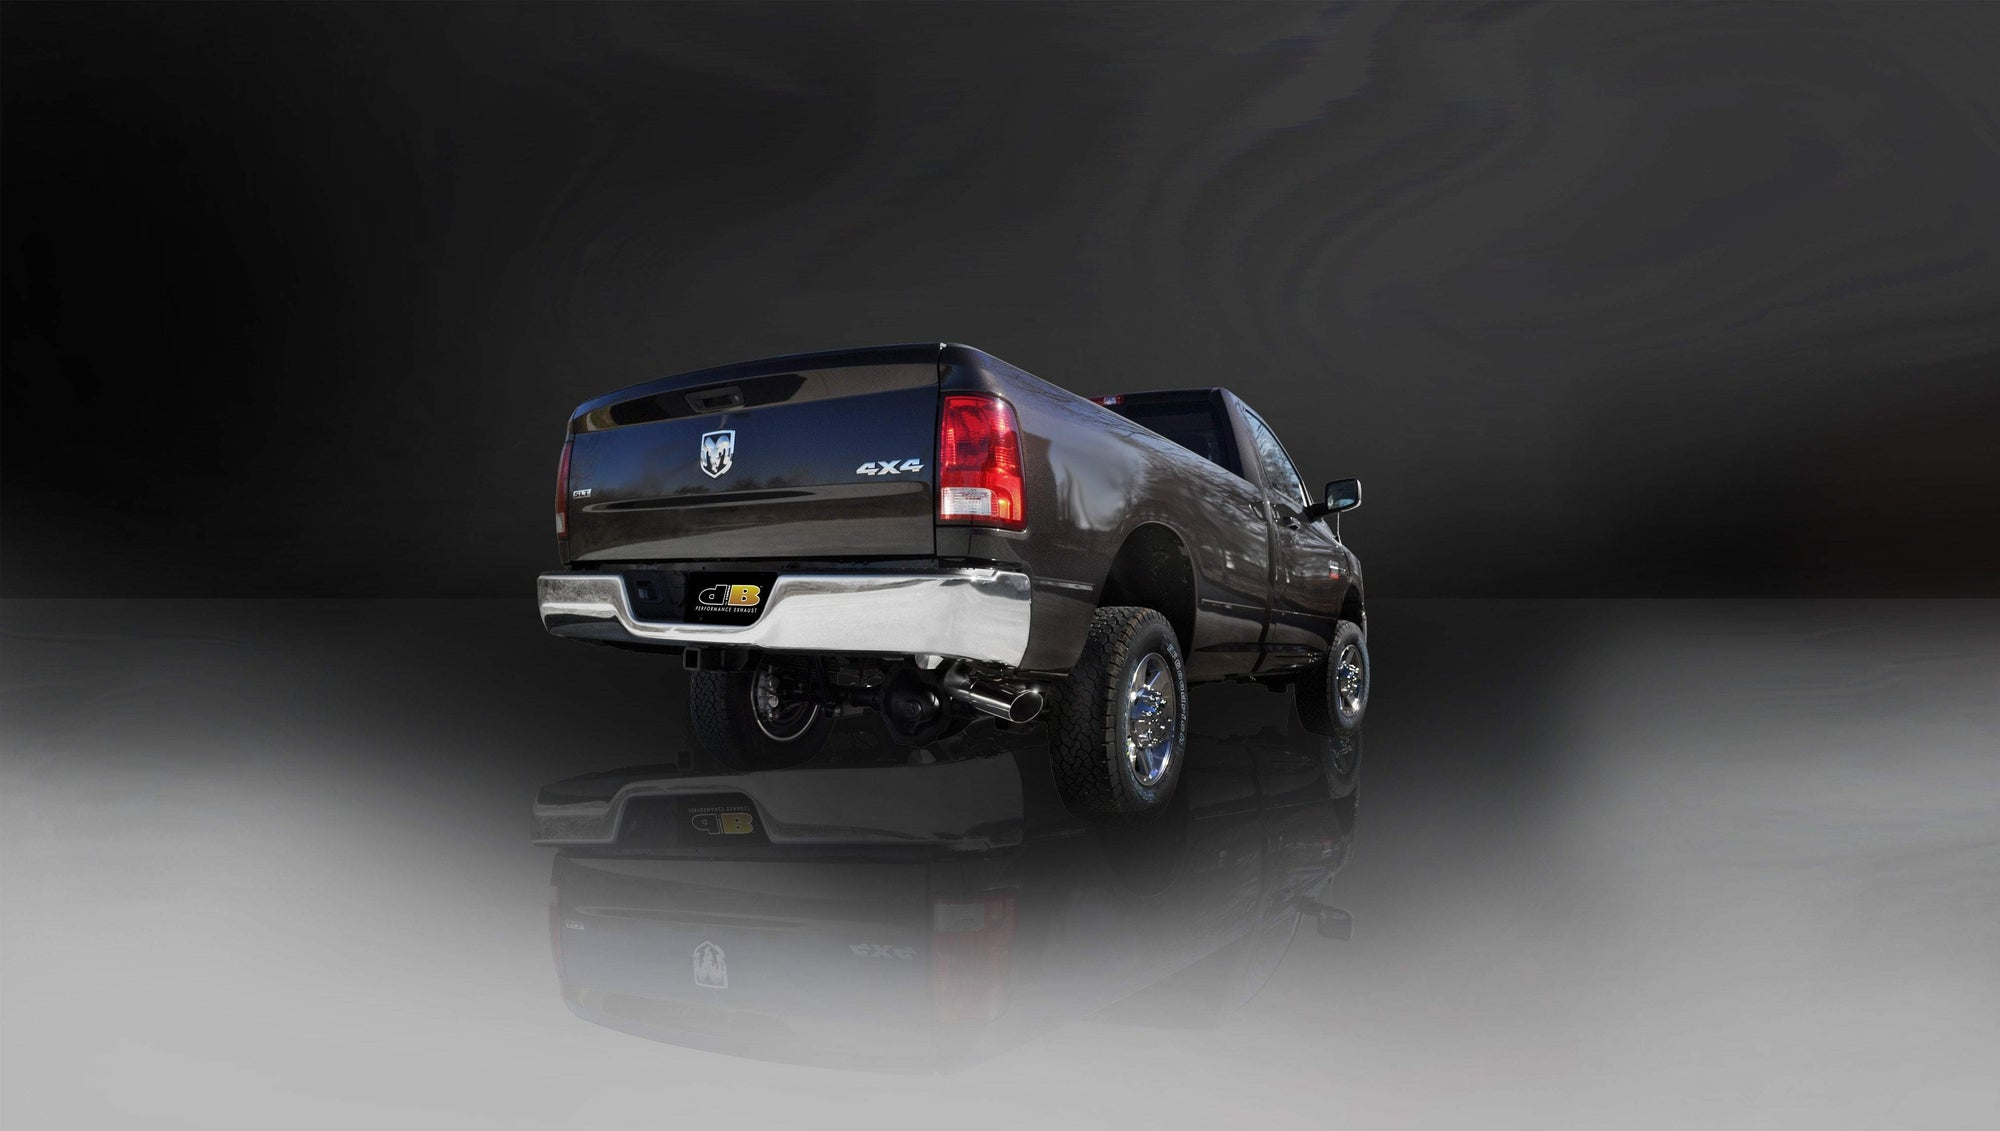 "dB Cat-Back Exhaust Polished / Sport / Single Side - Single 4in Slash Cut 2010-2013 Dodge RAM 2500 Crew Cab Long Bed 3.0"" Dual Rear Exit Catback Exhaust System with 4.0"" Tips (24483) Sound Level"